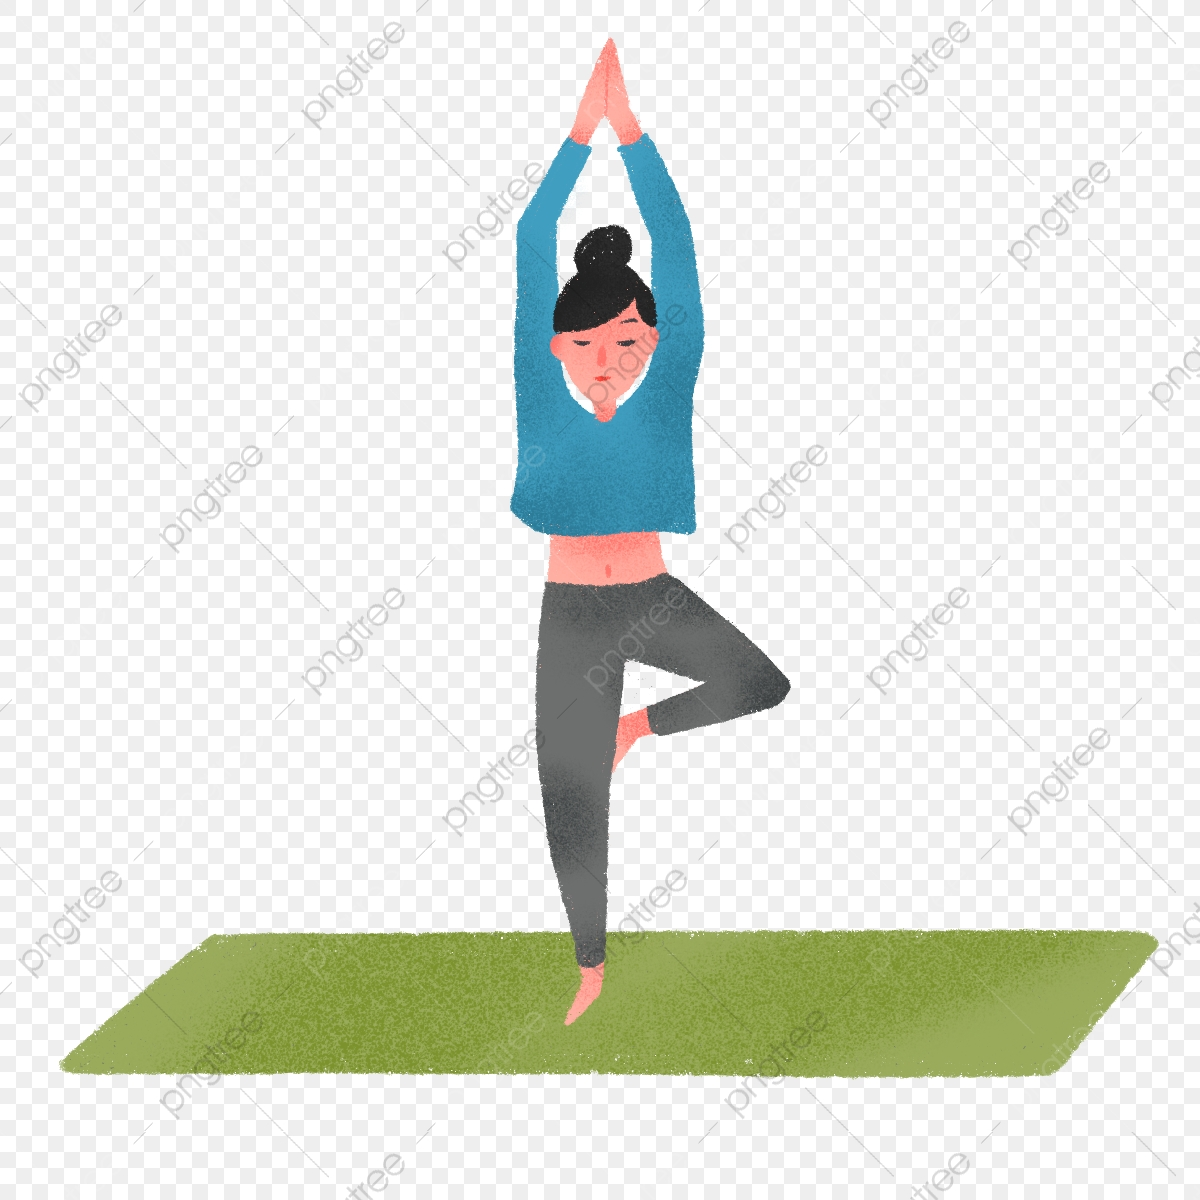 Hand Drawn Cute Yoga Poses Peaceful Sport Health Png Transparent Clipart Image And Psd File For Free Download